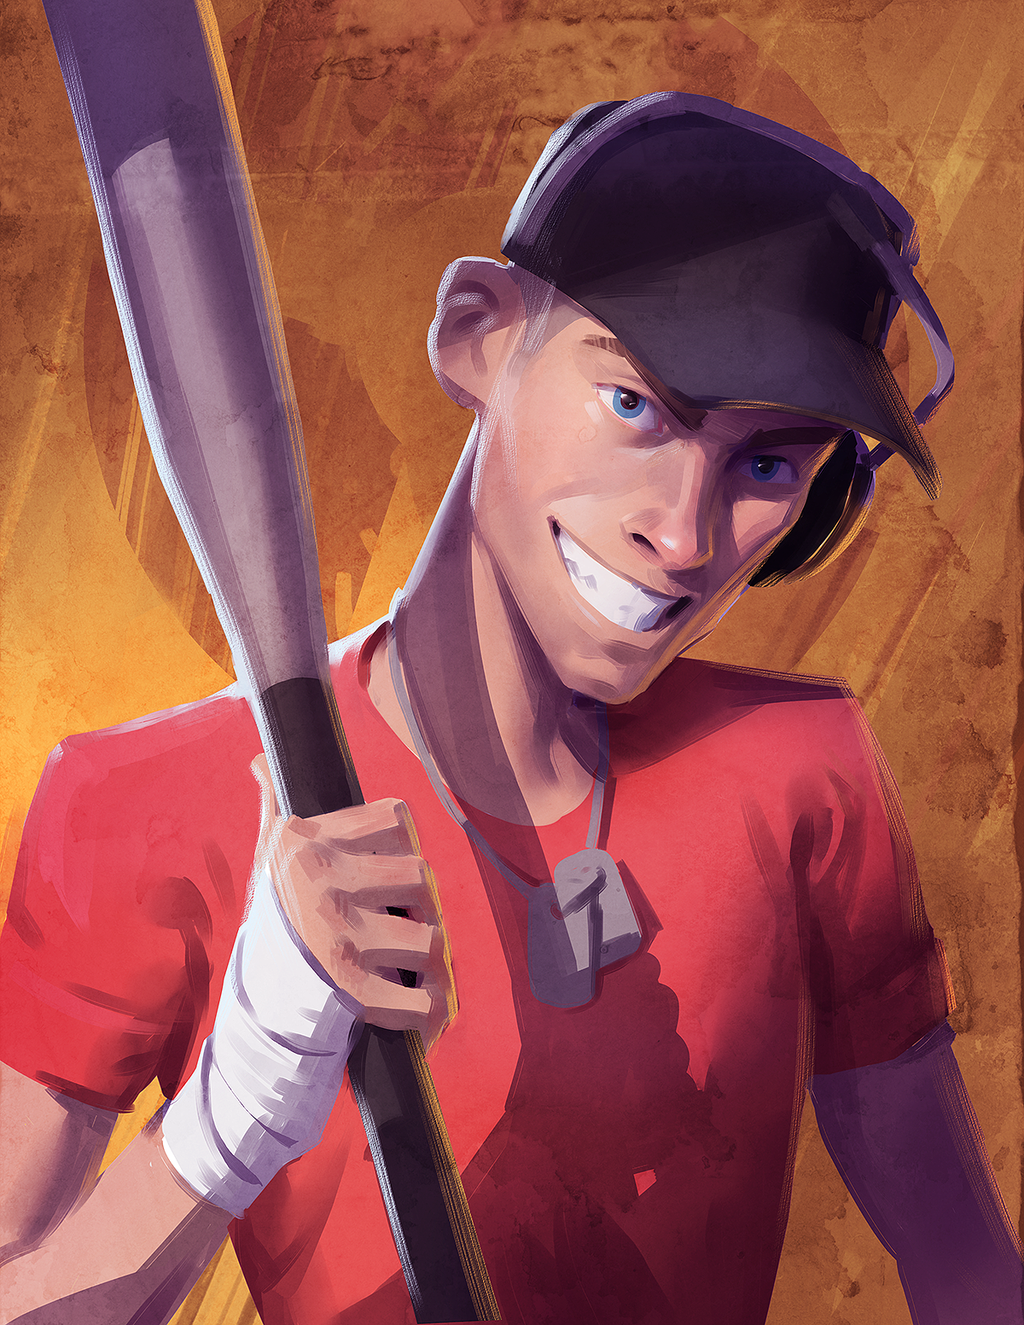 Tf2 Scout By Makkon On Deviantart Tf2 Scout Team Fortress 2 Team Fortess 2